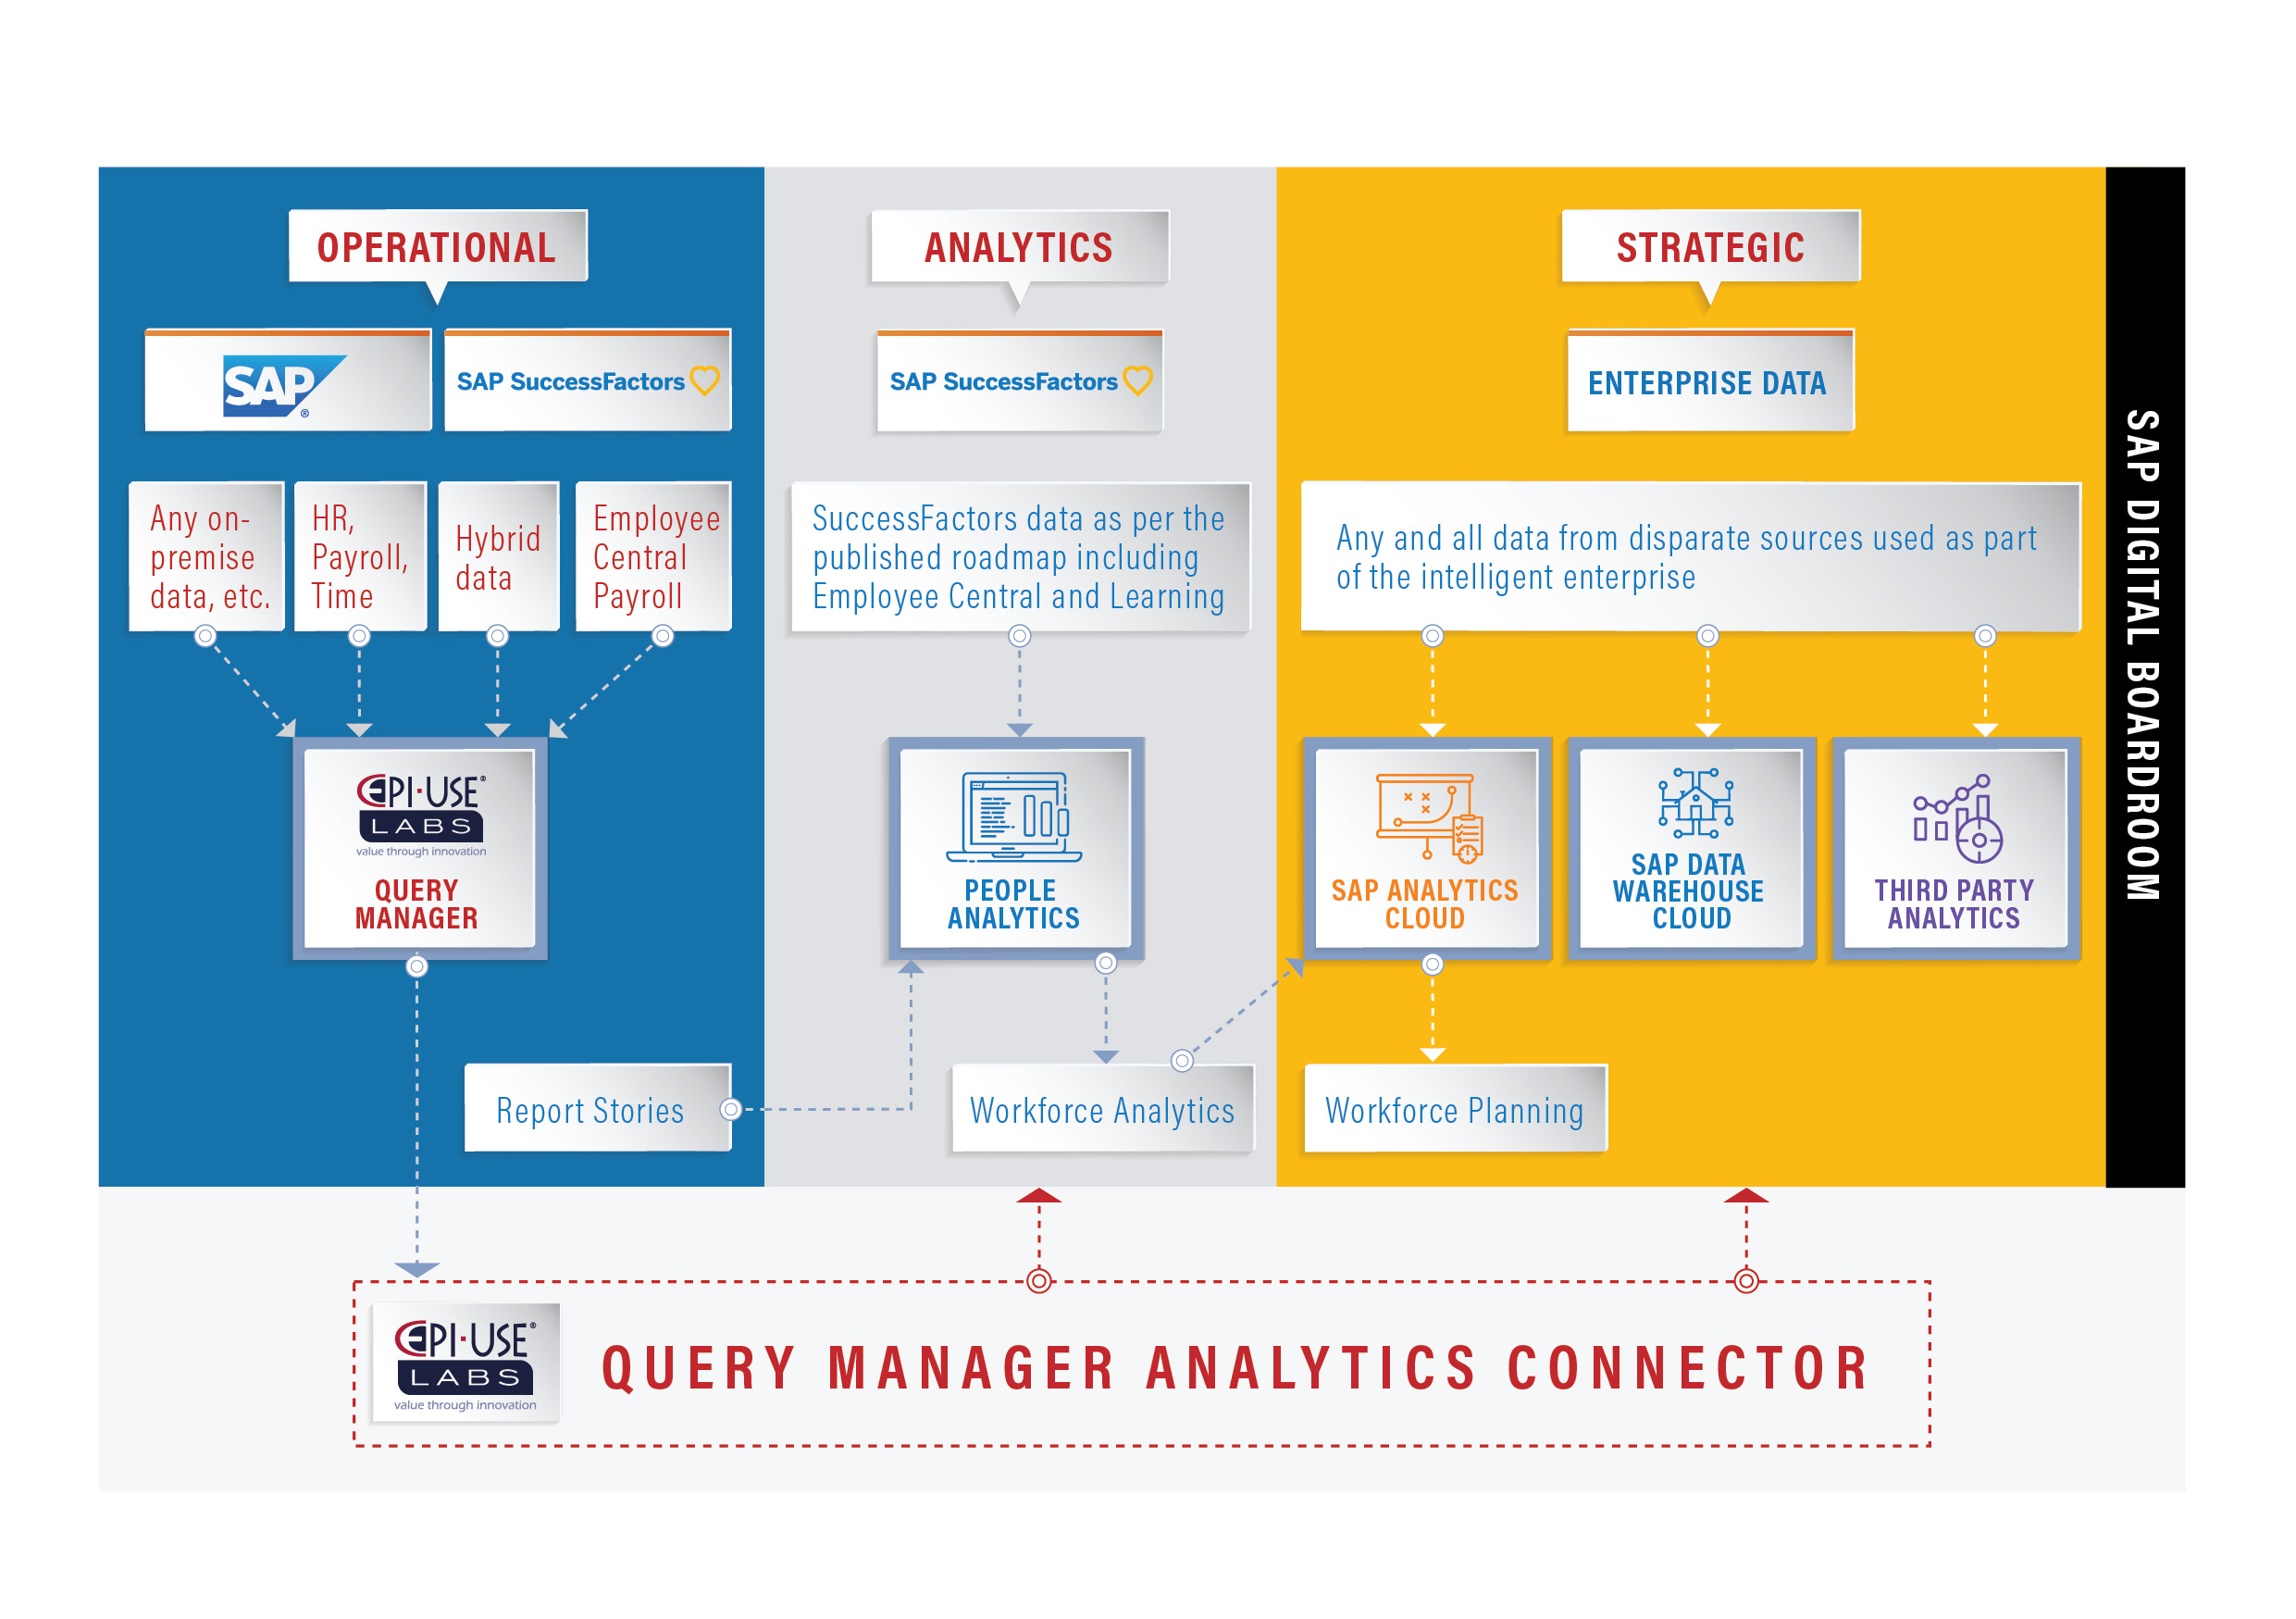 Graphics_QM_and_QMAC_Ebook_31_May-Infographic